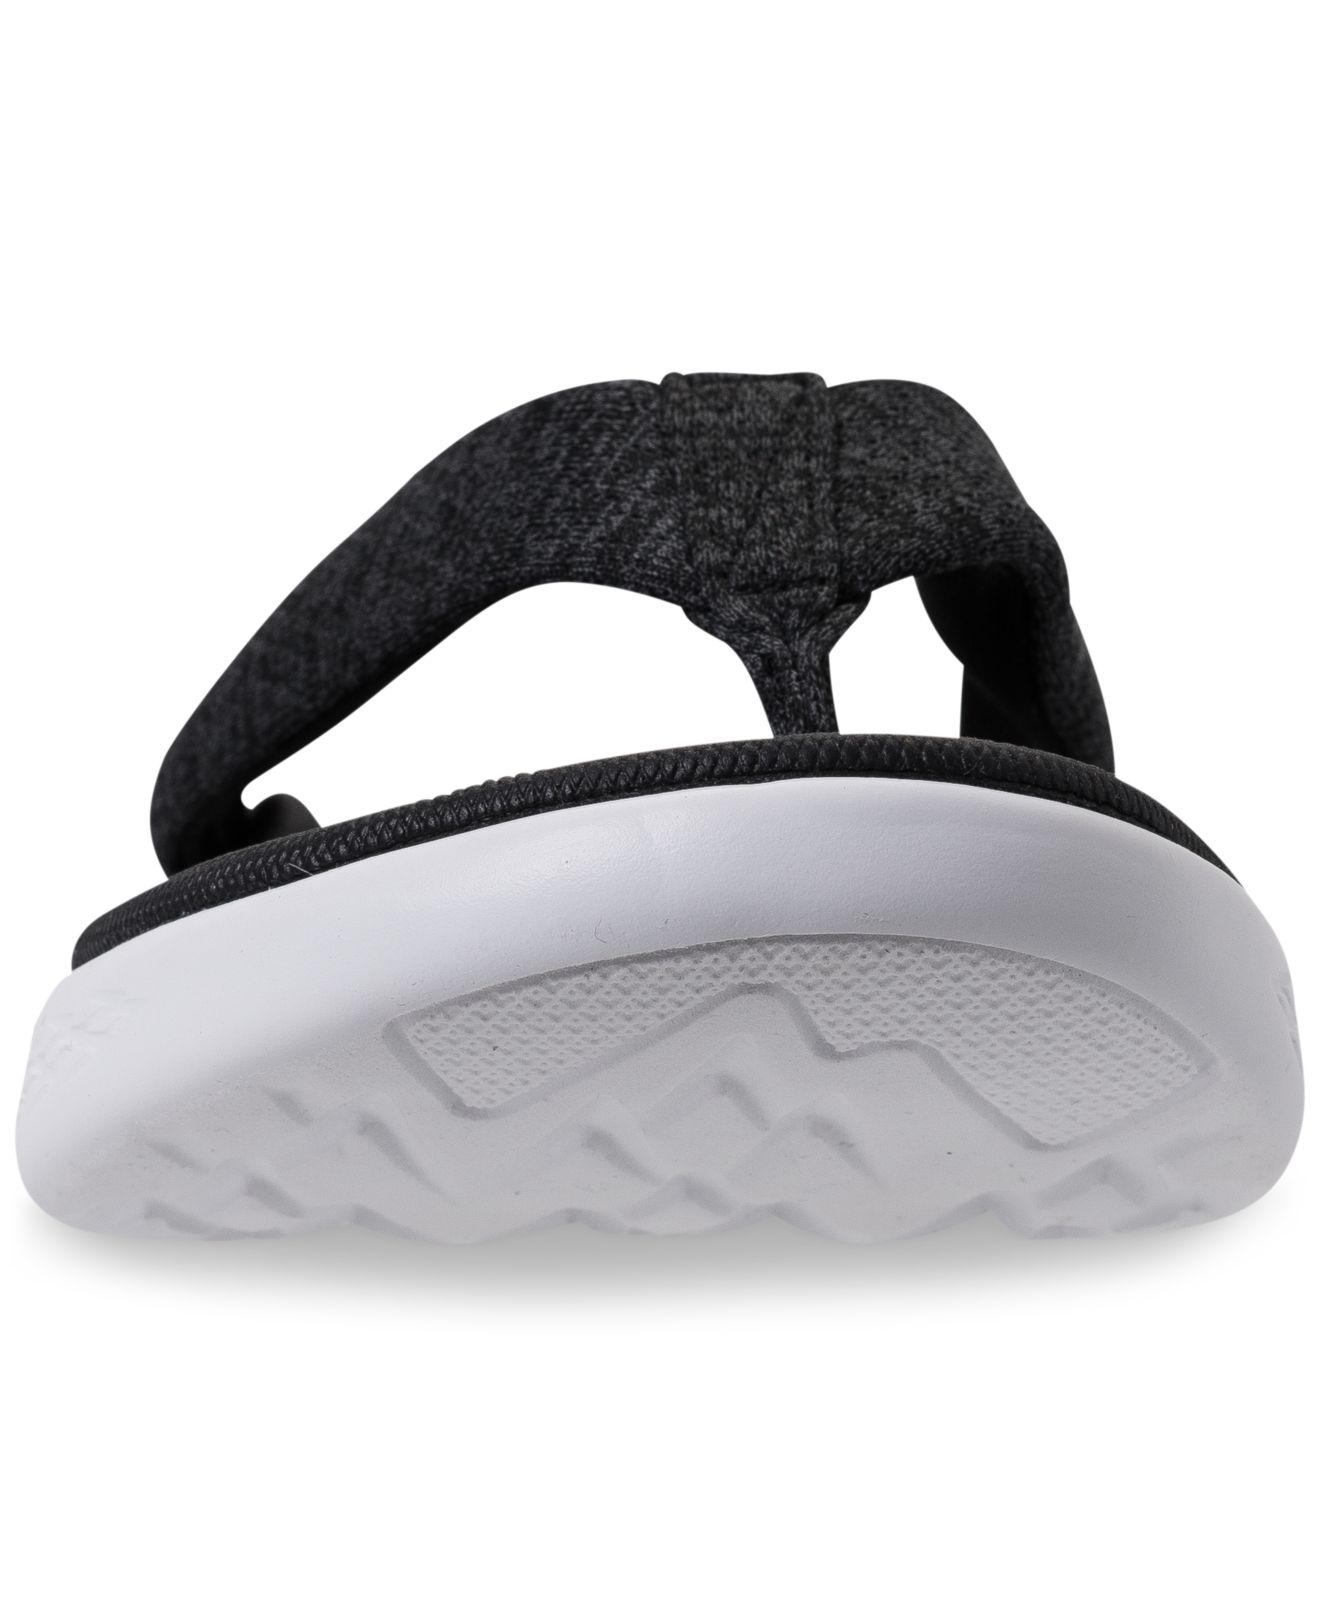 78abd17f Skechers On The Go 600 - Preferred Athletic Thong Flip Flop Sandals ...